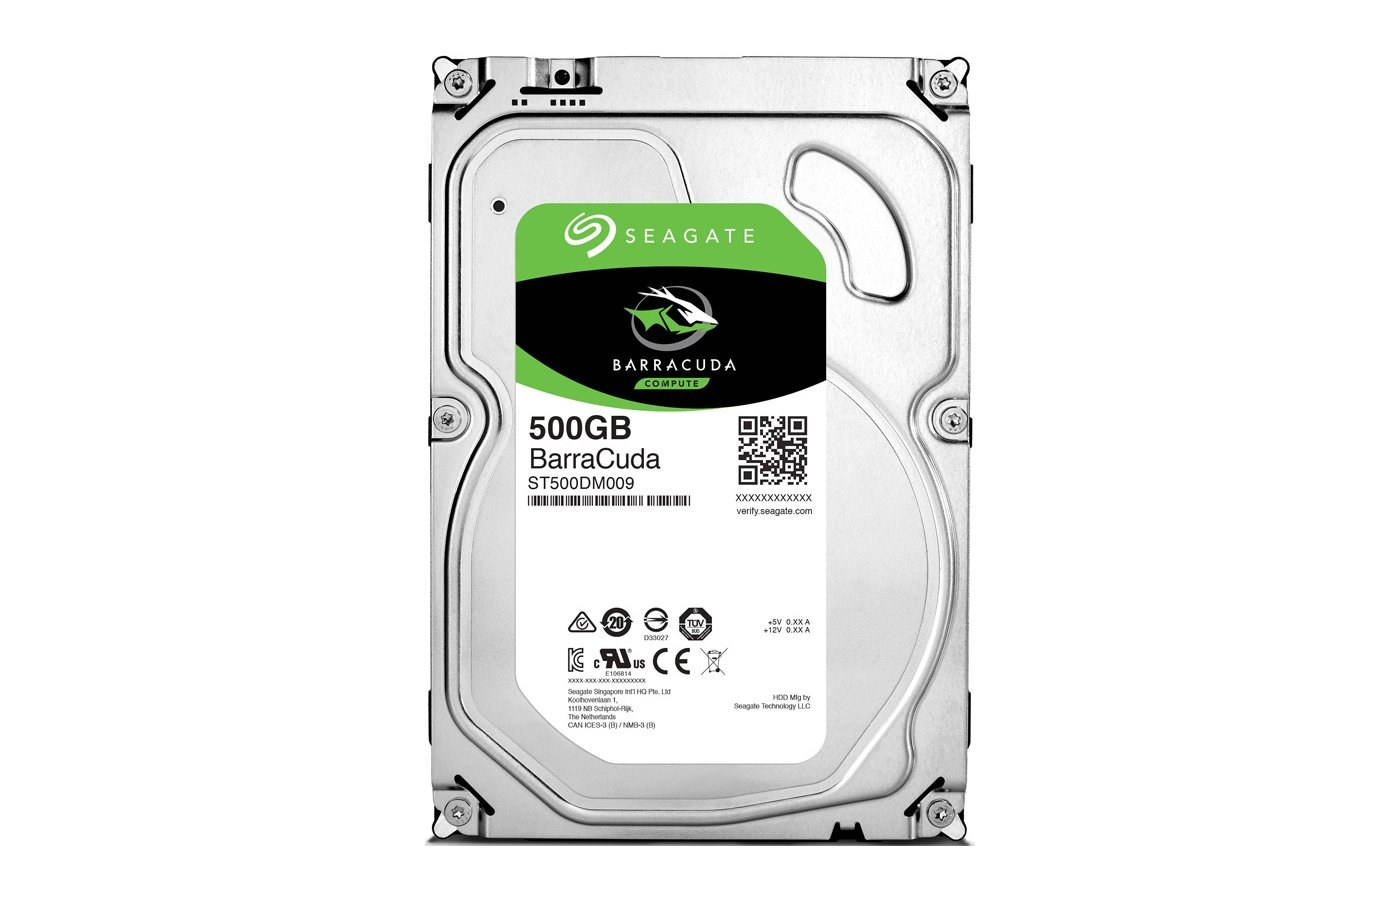 Жесткий диск Seagate SATA-III 500Gb ST500DM009 Barracuda (7200rpm) 32Mb 3.5""